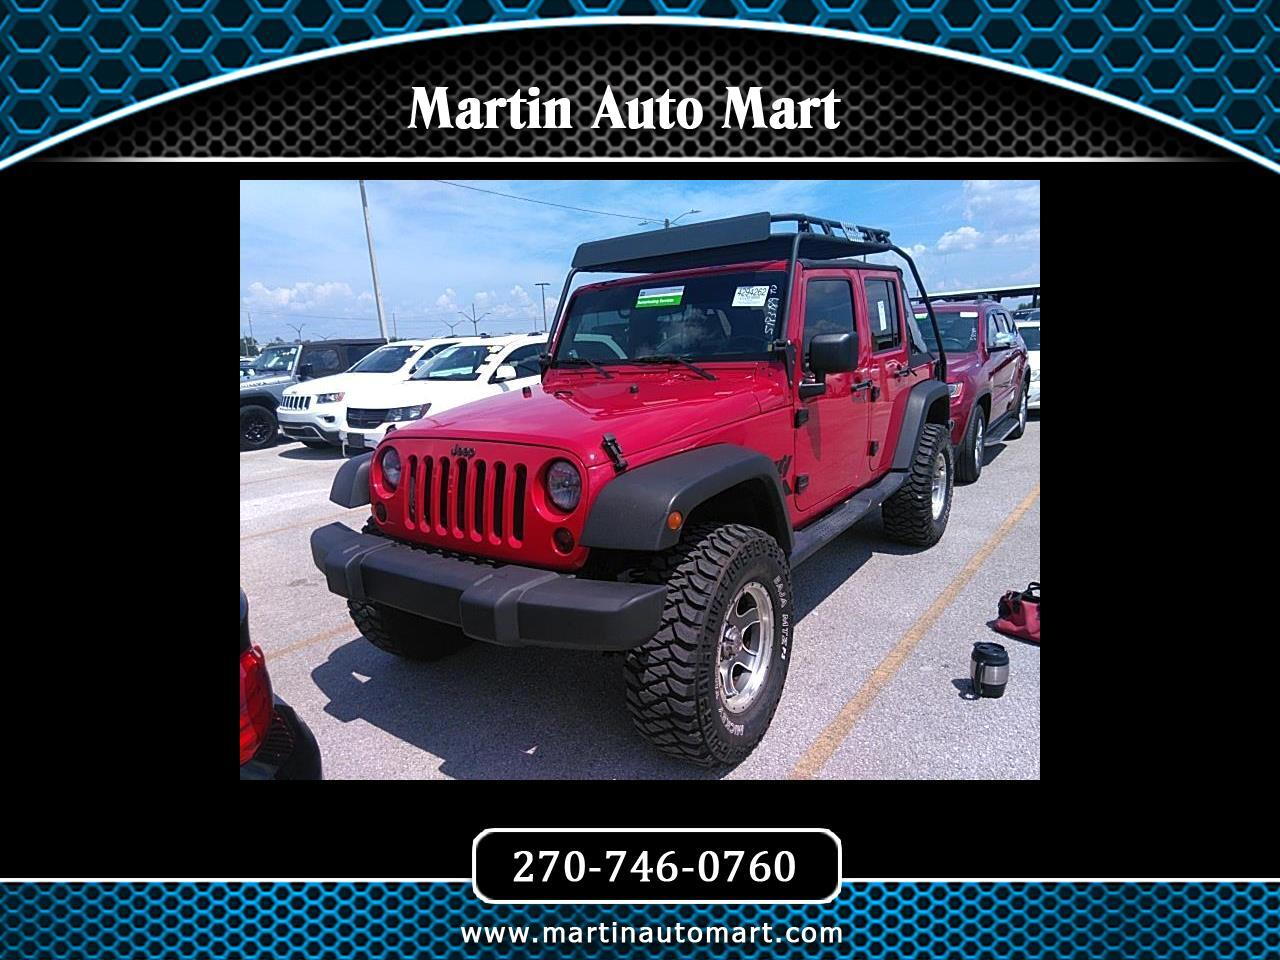 Jeep Wrangler 2WD 4dr Unlimited X 2007